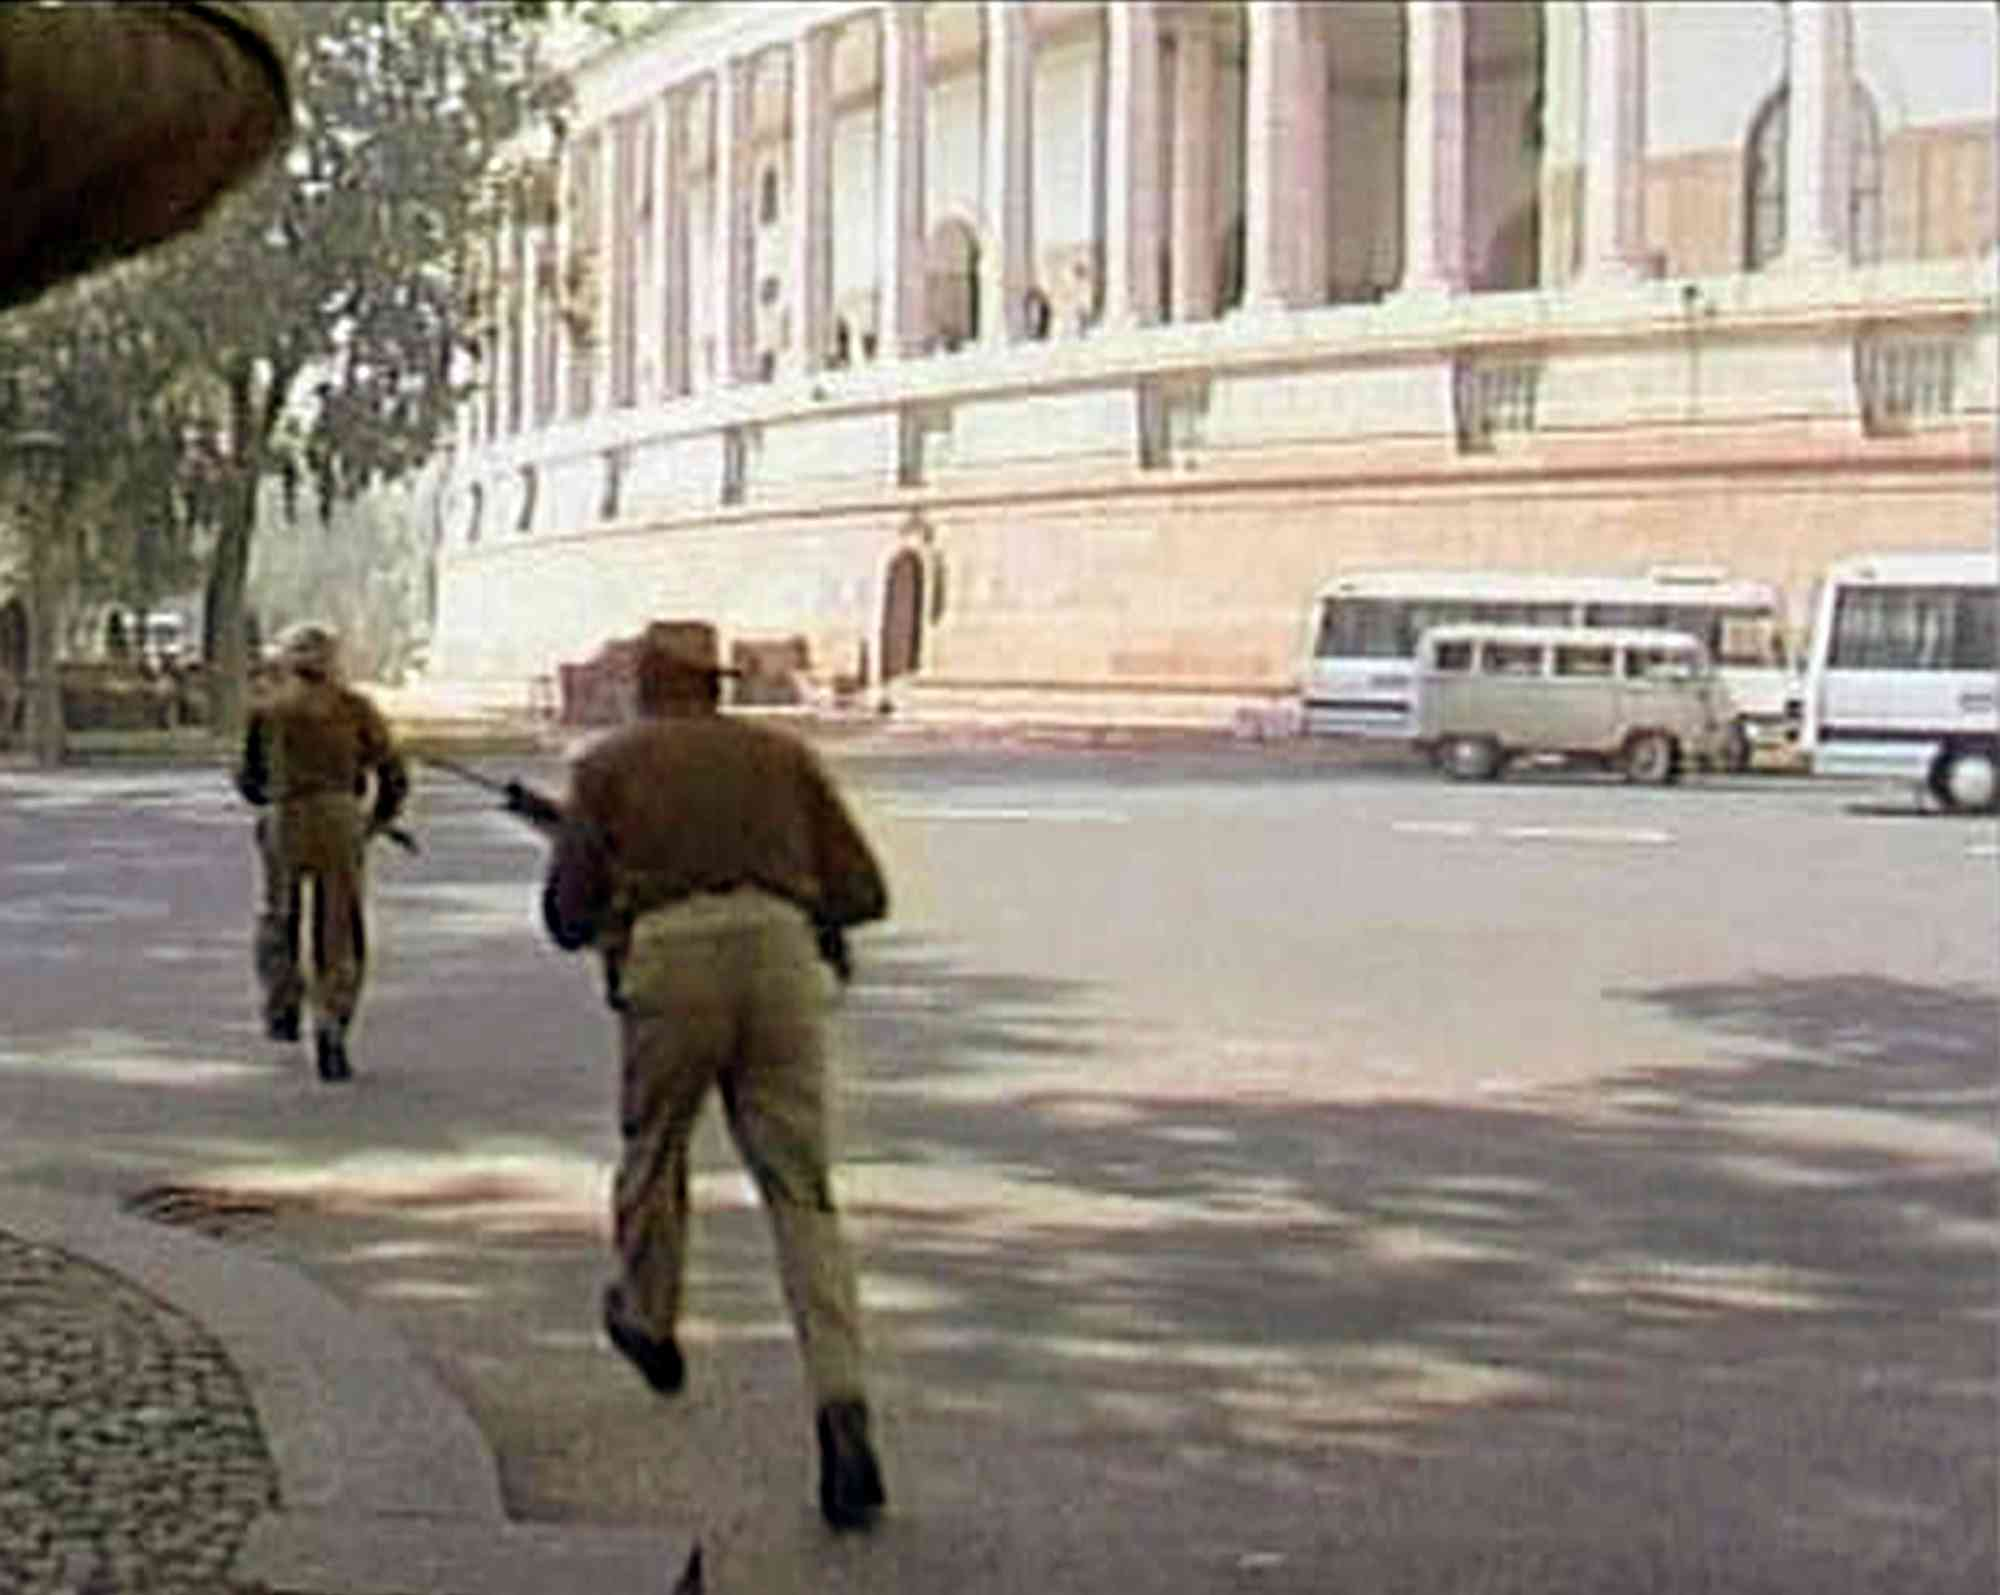 Security personnel in the Indian Parliament complex run for cover during the December 2001 terrorist attack in which 14 people, including five gunmen, were killed. The terrorists belonged to the Lashkar-e-Taiba and the Jaish-e-Mohammed. (Photo credit: Reuters)